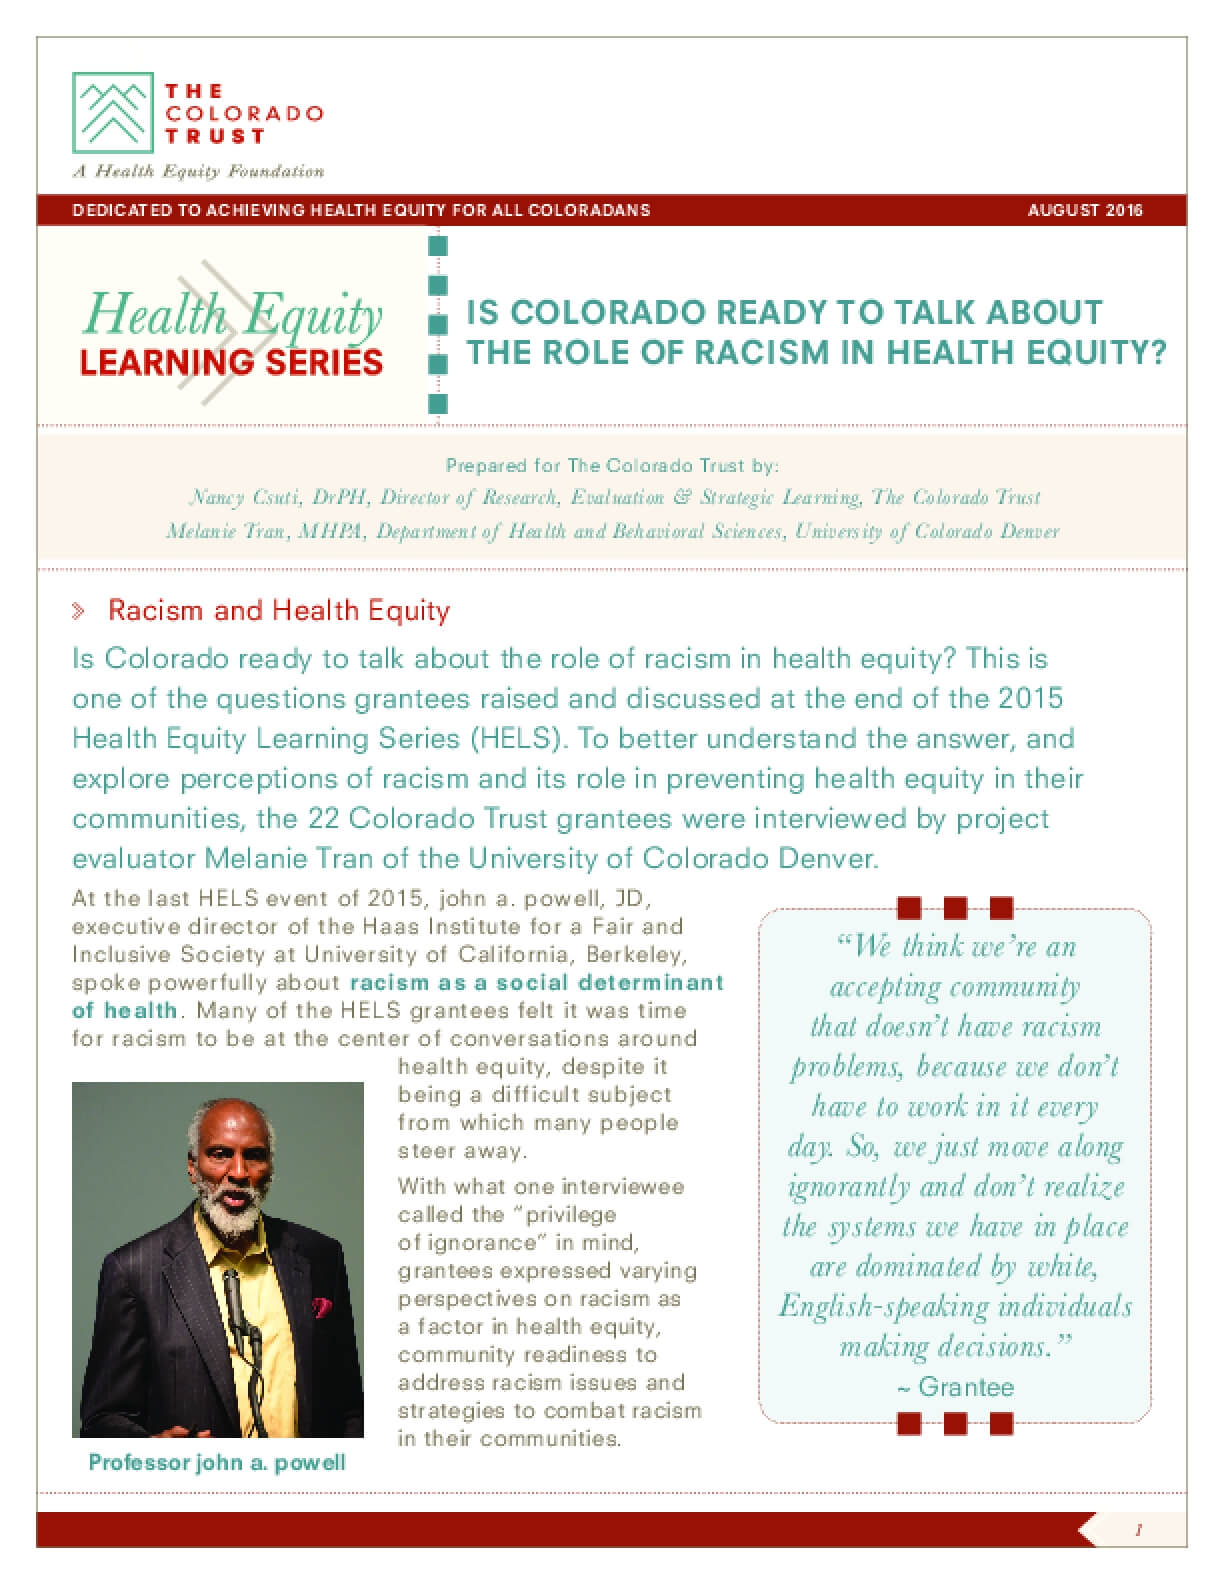 Is Colorado Ready to Talk About the Role of Racism in Health Equity?